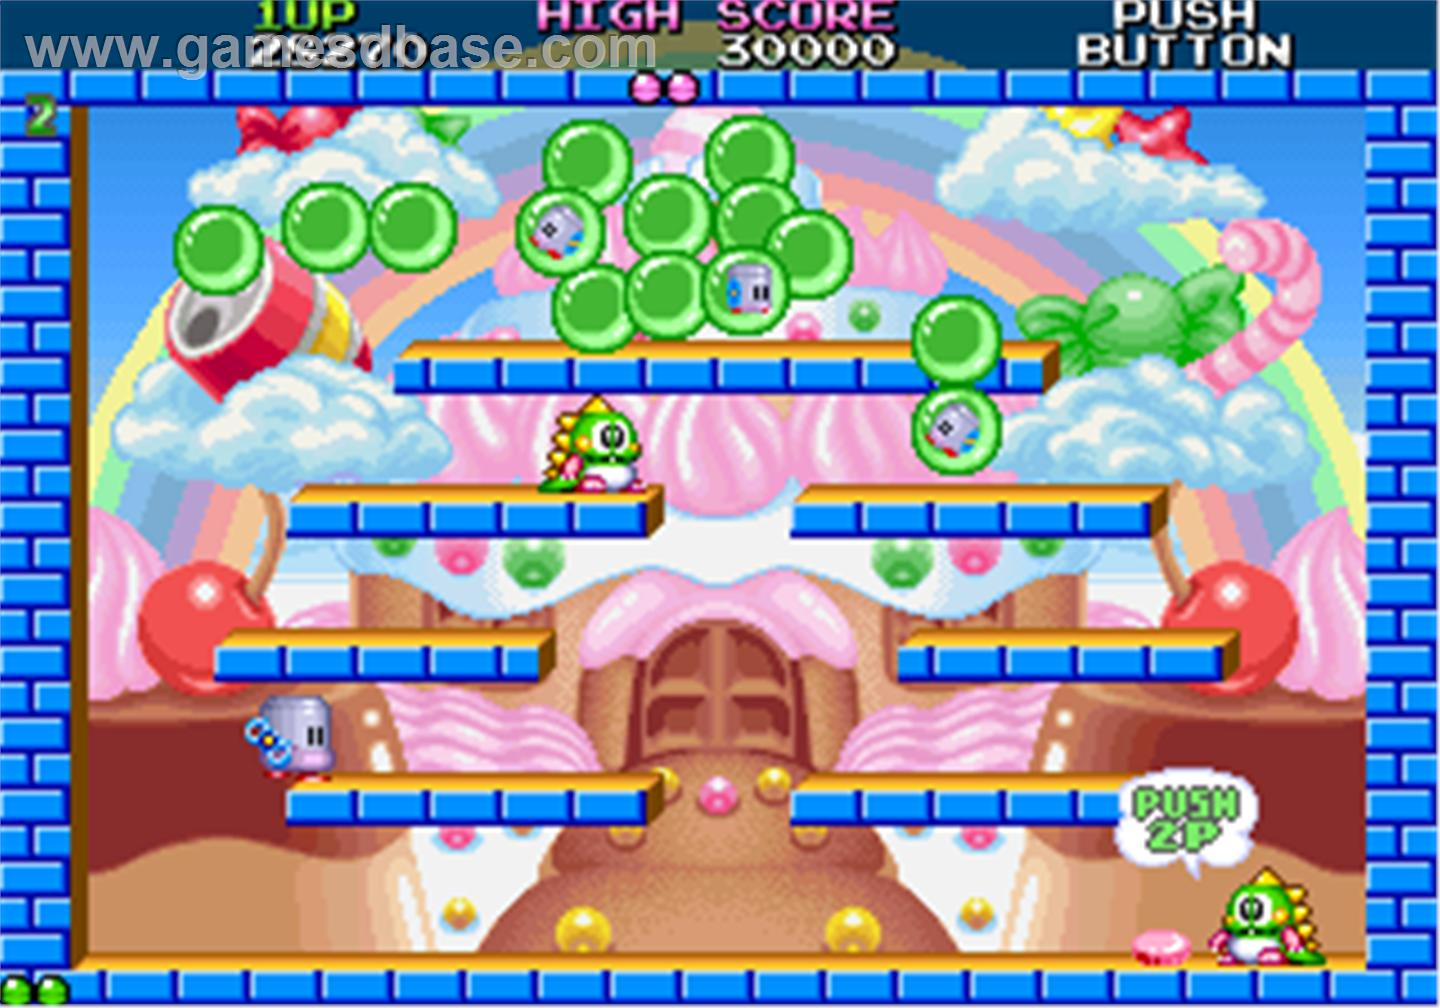 Bubble bobo hero 2 free download download.